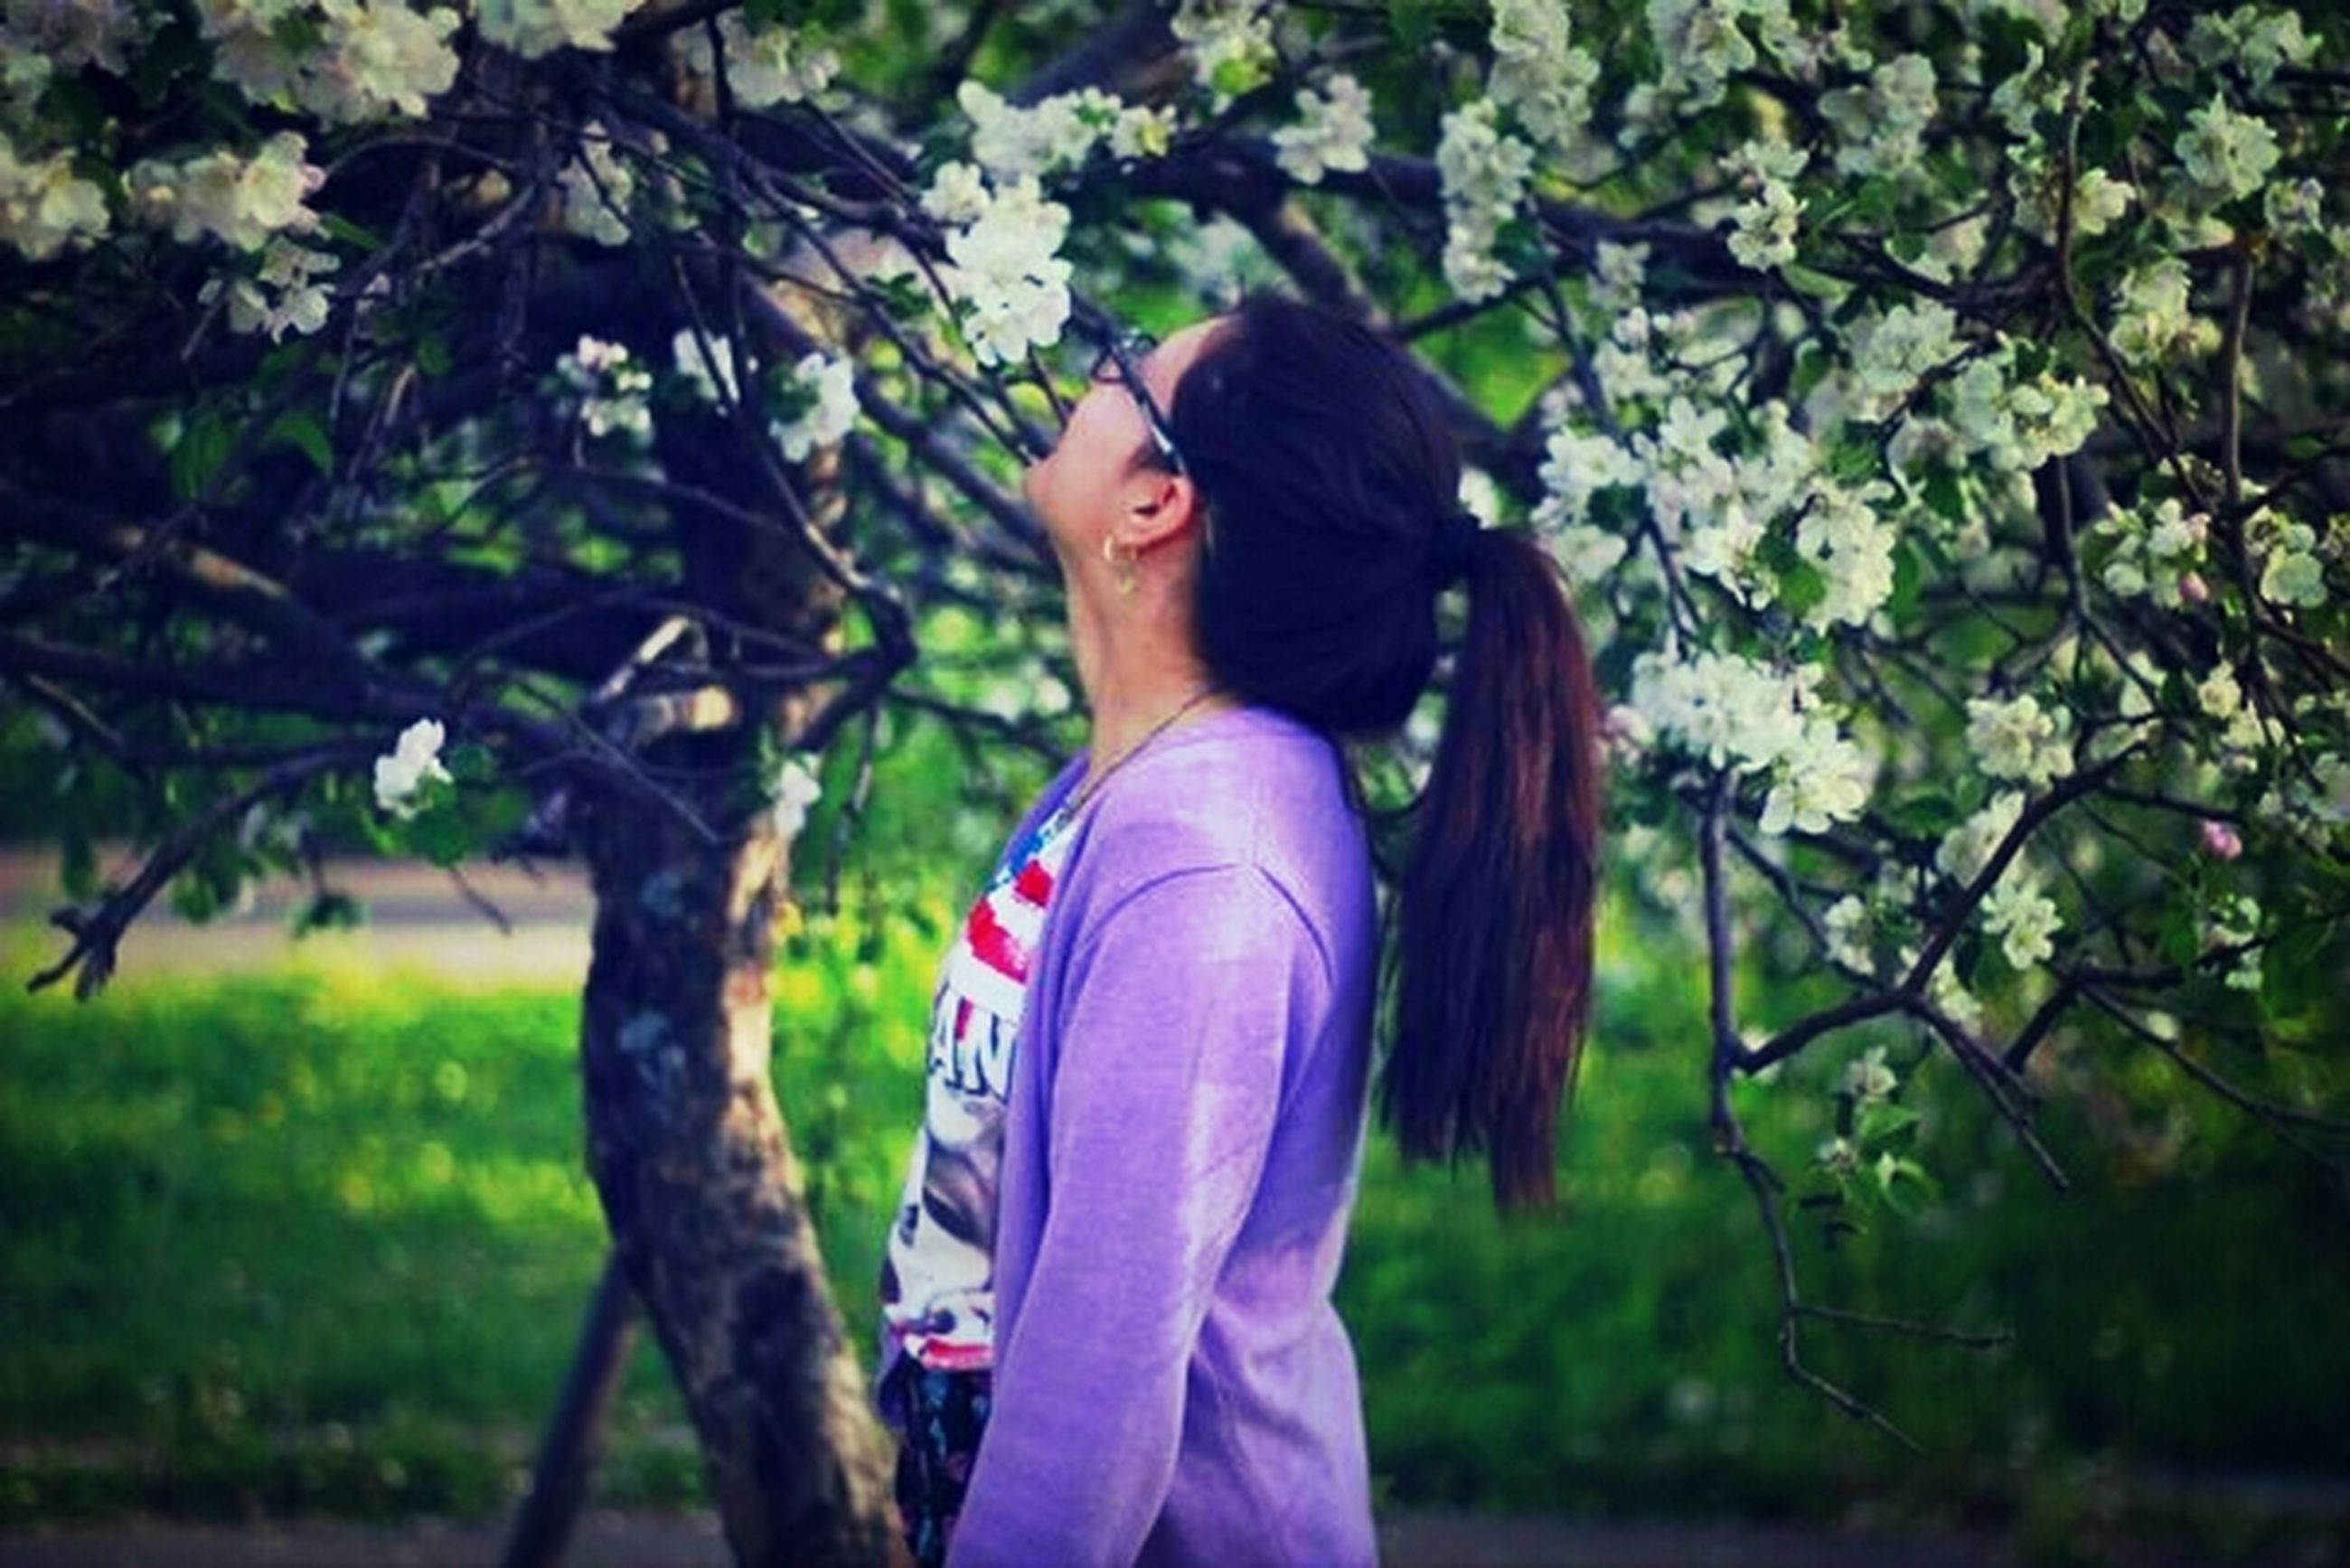 lifestyles, young adult, person, tree, leisure activity, casual clothing, young women, smiling, focus on foreground, looking at camera, three quarter length, portrait, standing, long hair, front view, park - man made space, happiness